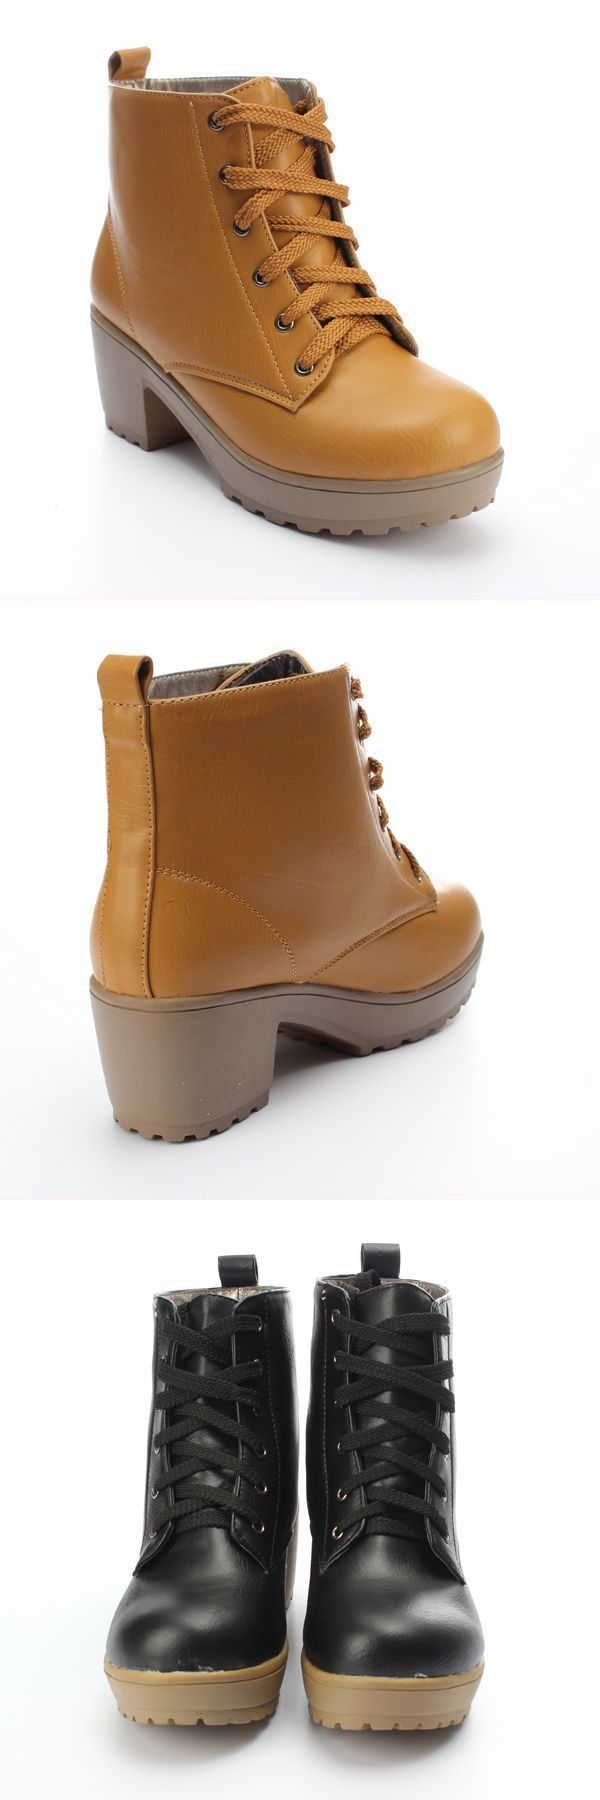 R Bootstrap Women 8217 S Winter Round Toe Boots Lace Up Platform Shoes